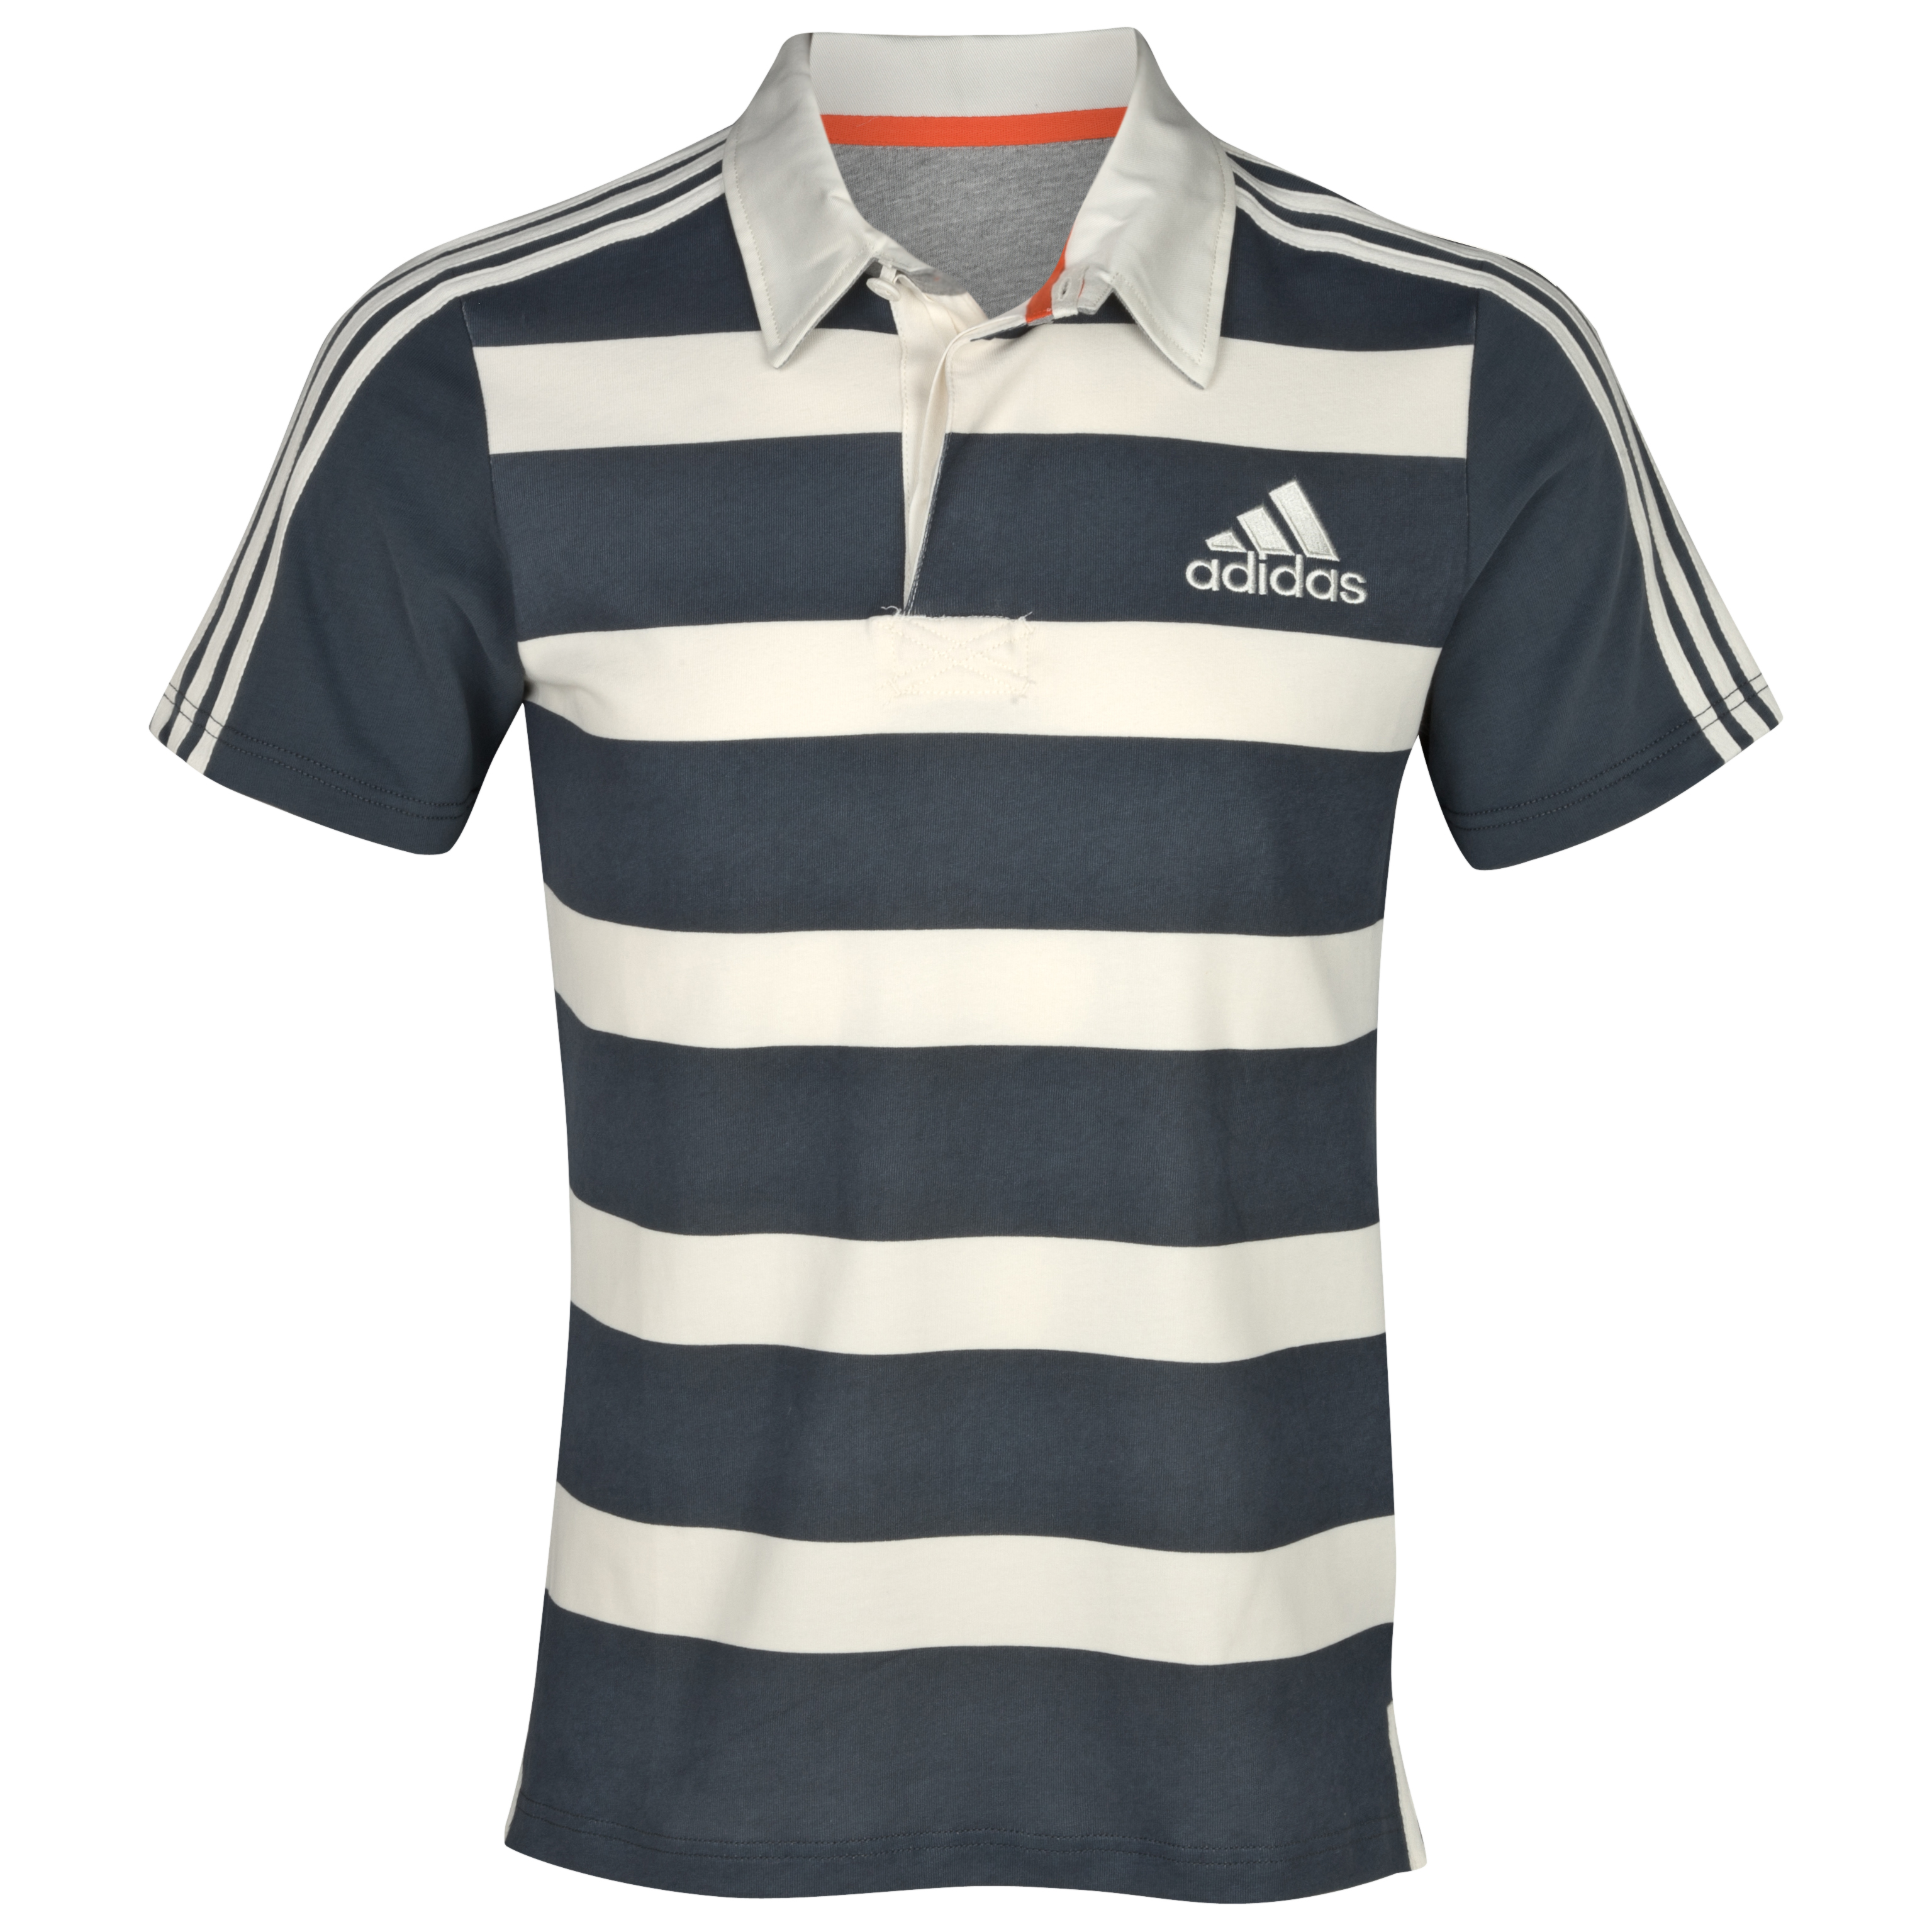 adidas Essentials  Short Sleeve Rugby Jersey - Dark Onix/Spray